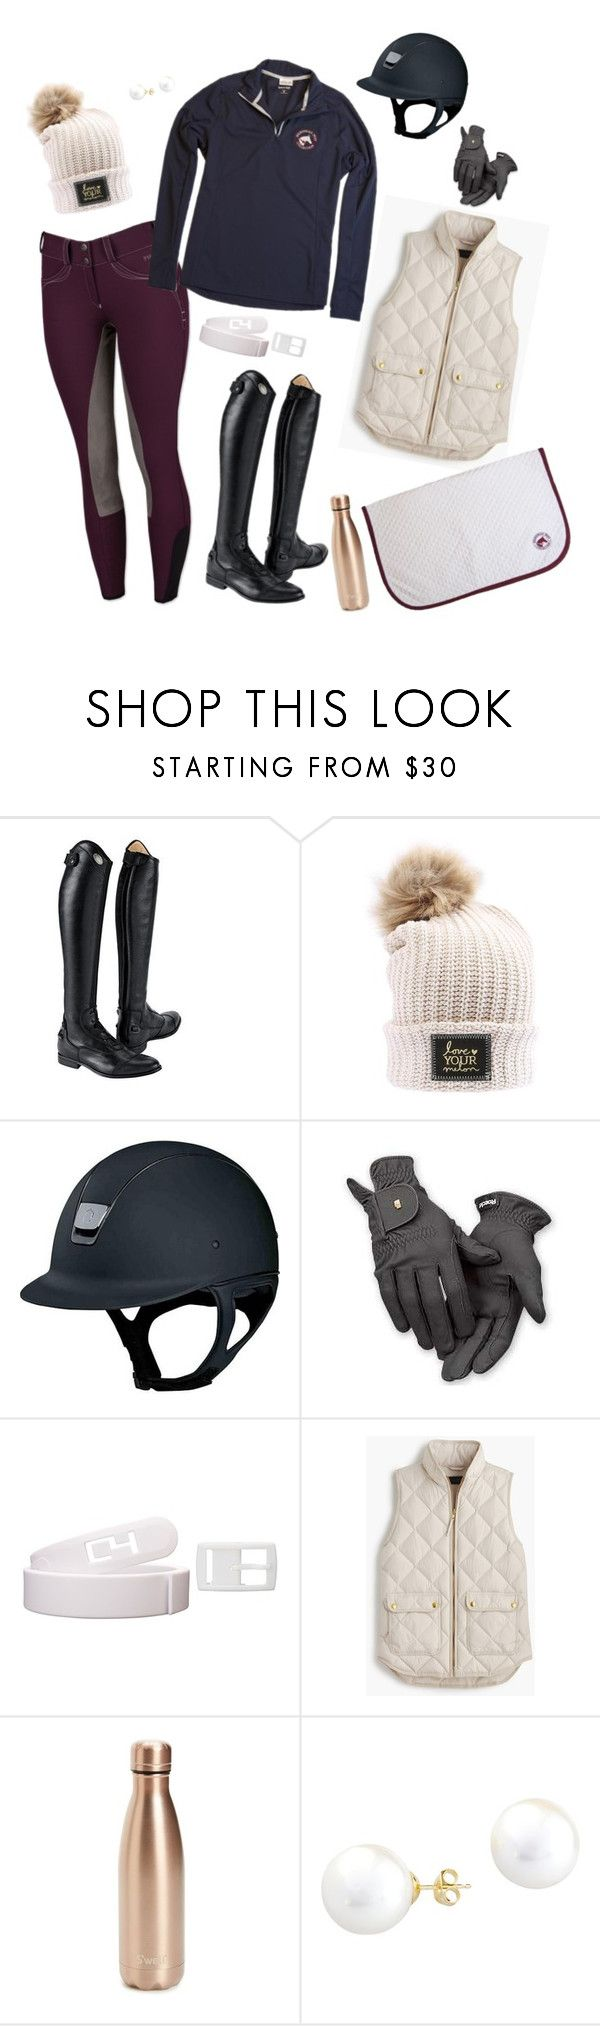 """""""Fall Lesson Day"""" by equestrianprepcollection on Polyvore featuring Parlanti, Roeckl, J.Crew, S'well, A B Davis, rootd, equestrianfashion and equestrianprepcollection"""